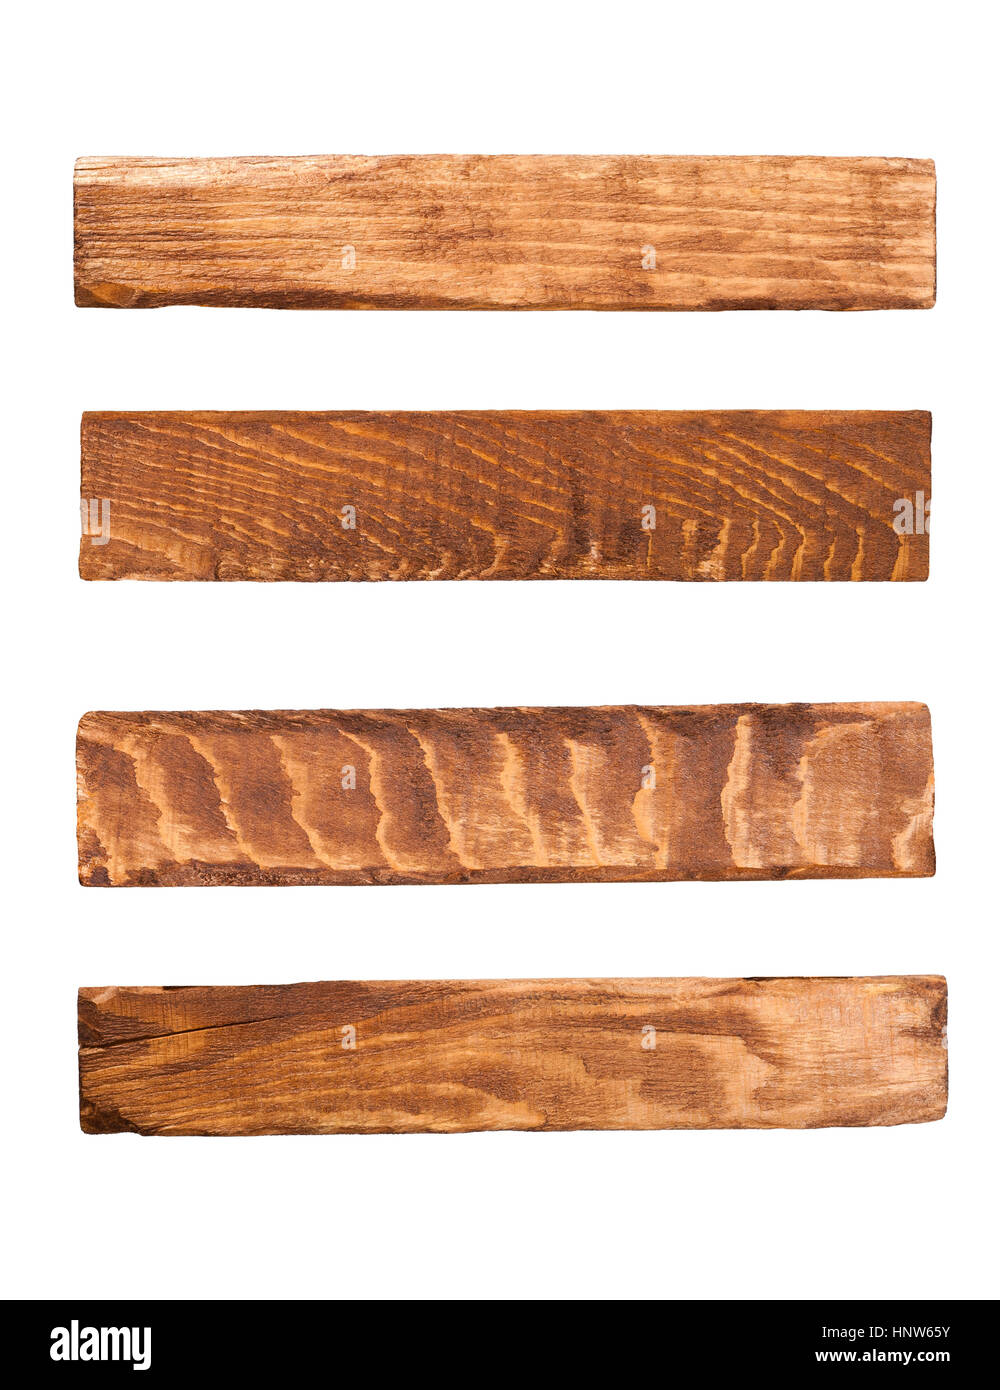 Wood panels isolated on white - Stock Image